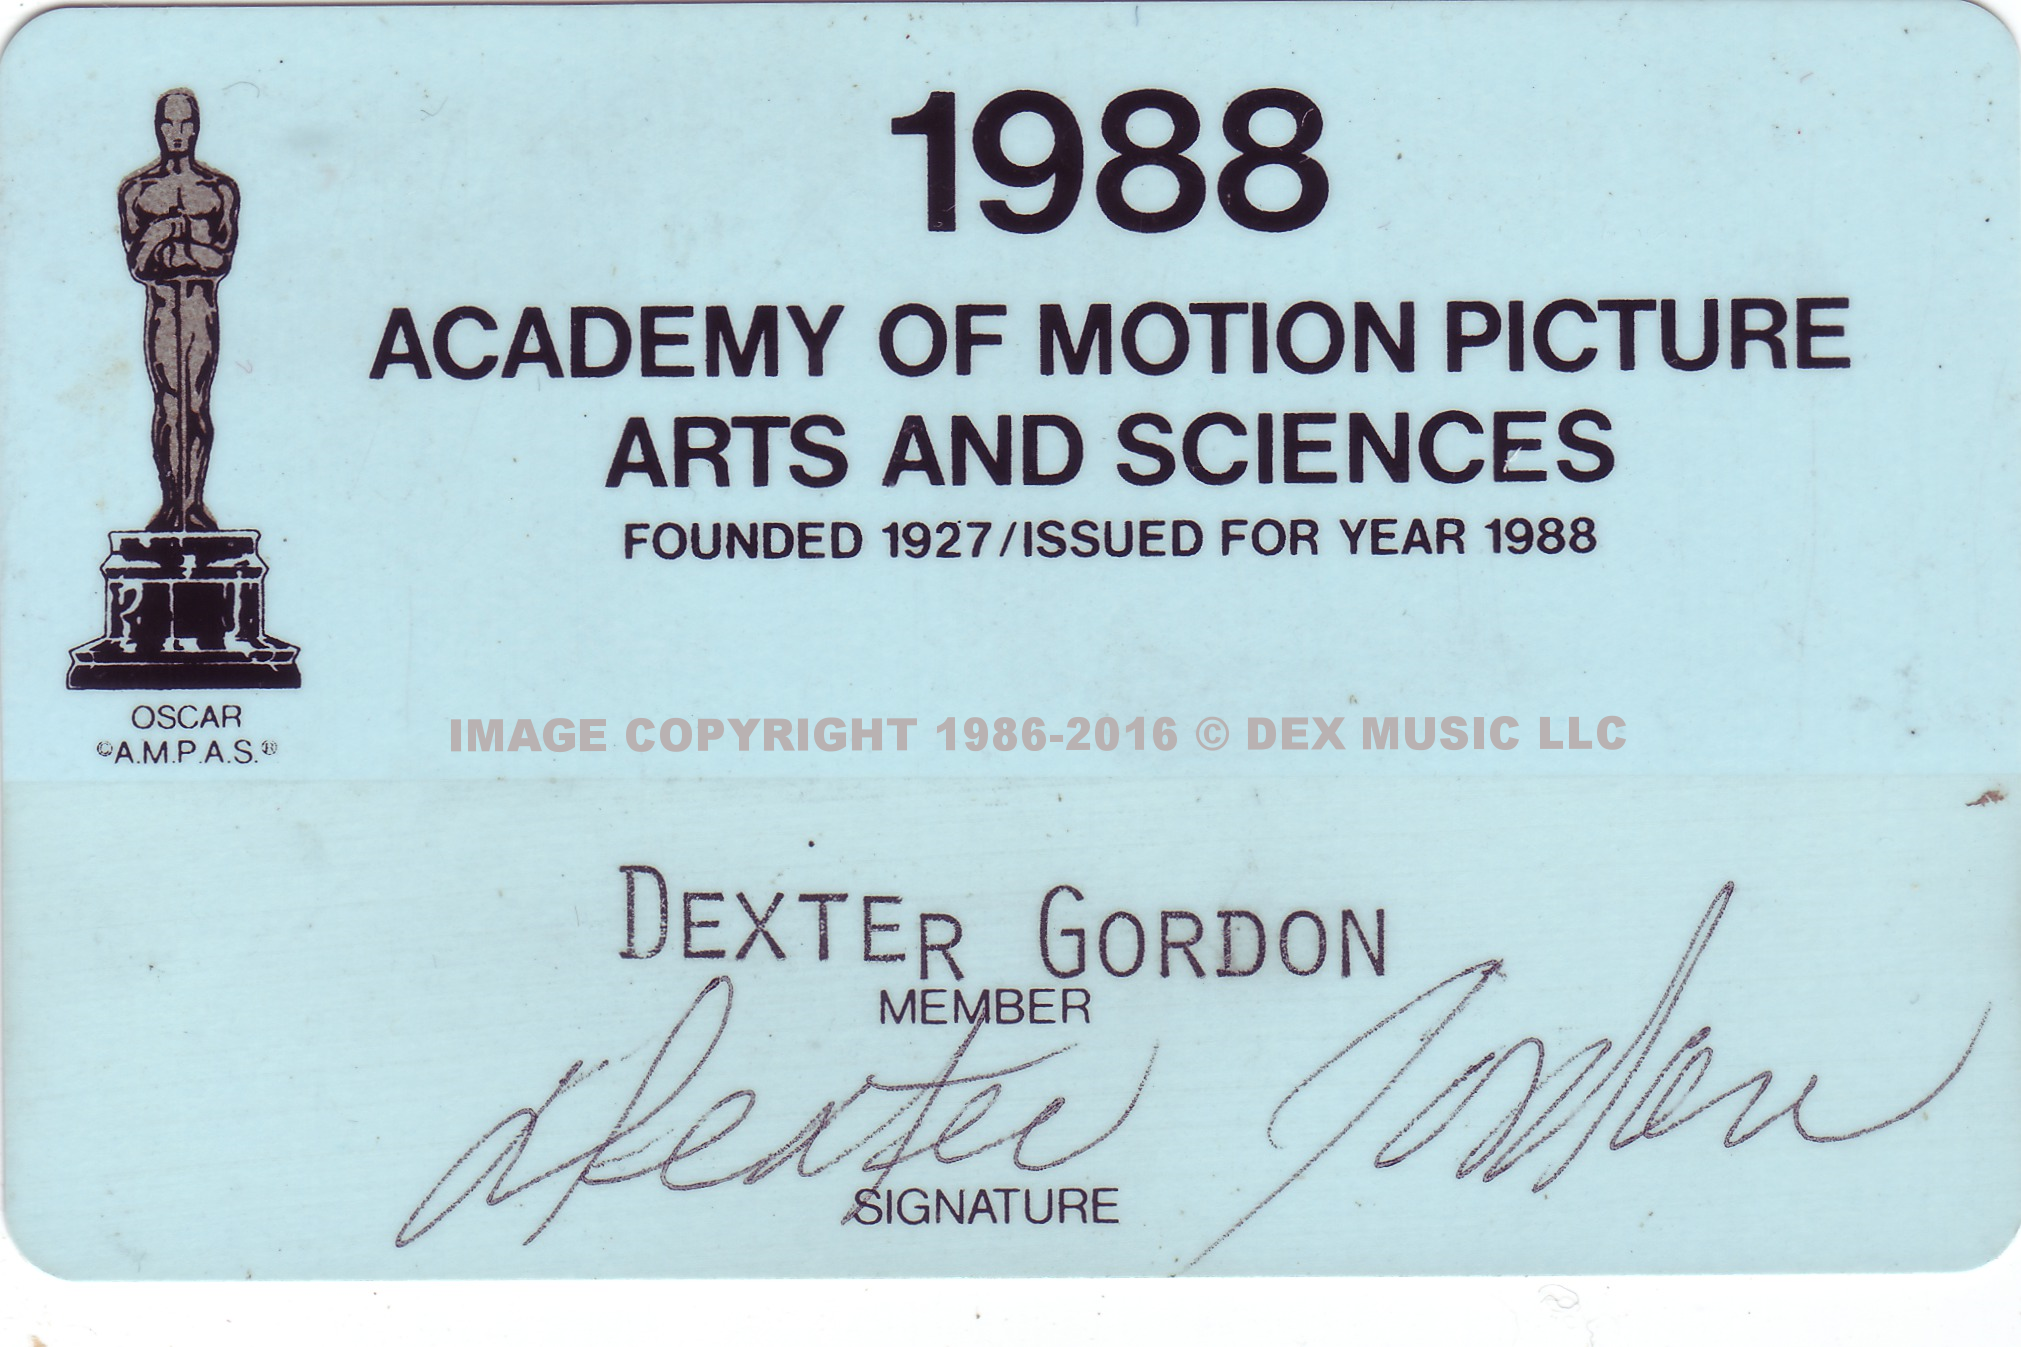 Dexter Gordon's Academy of Motion Pictures Membership Card